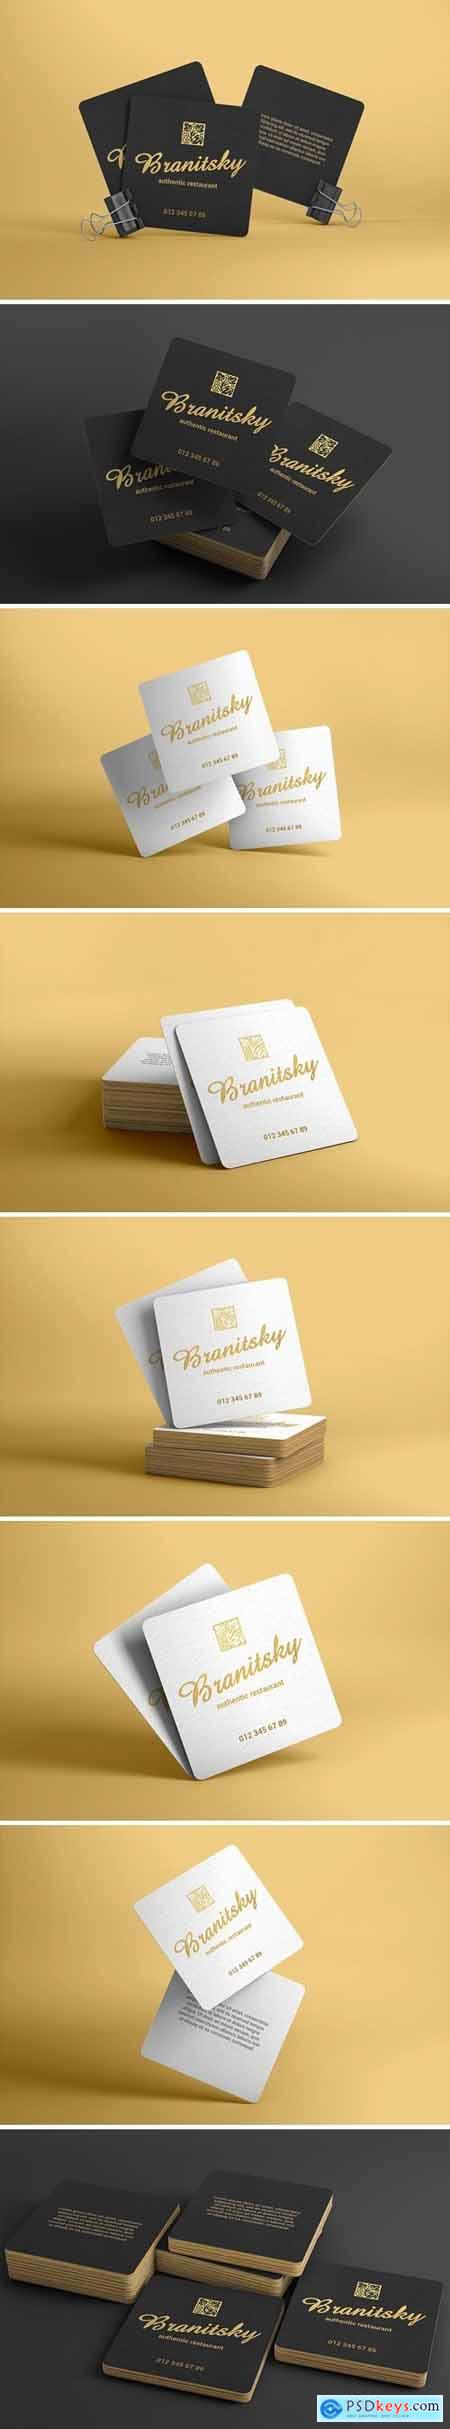 Square Business Card With Rounded Corners Mockups